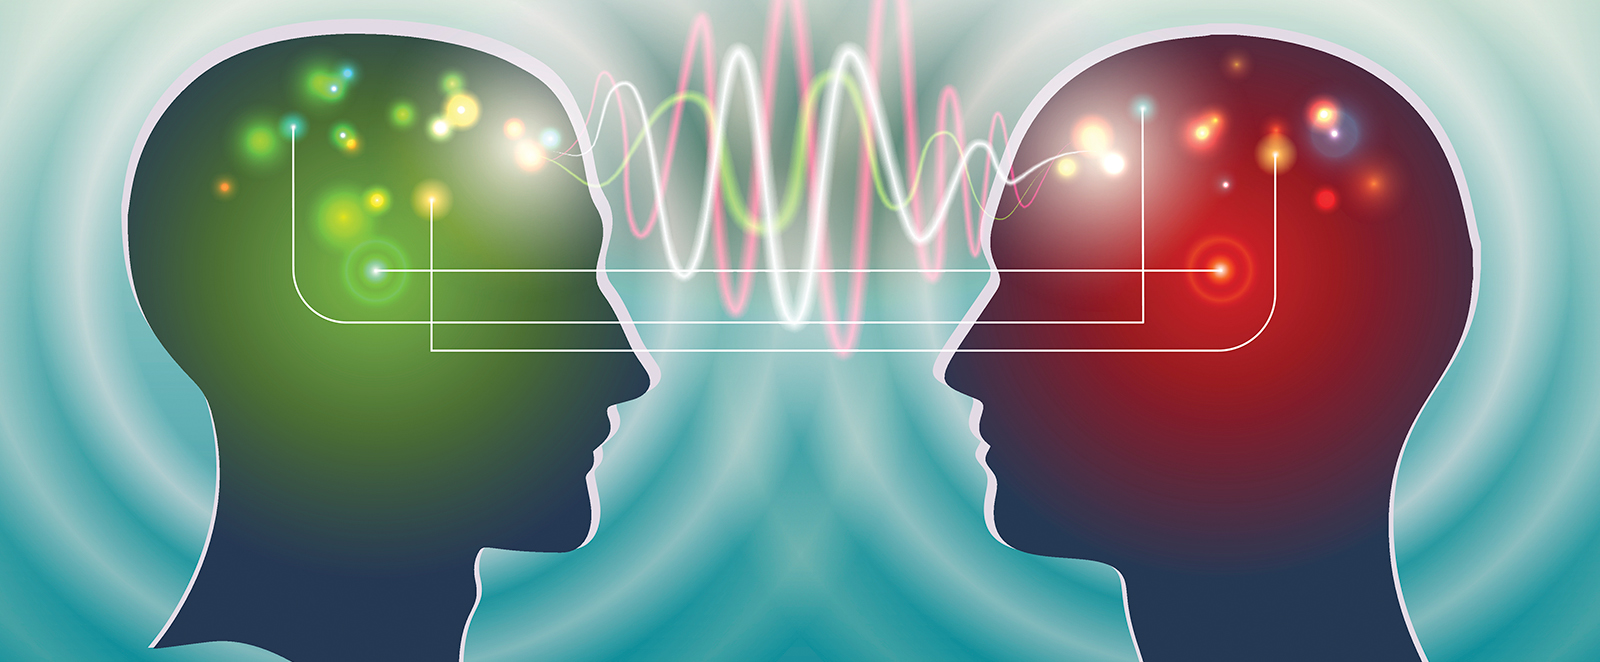 On-Demand Webinar: Remote Viewing: Tapping Into the Universal Mind featuring Janet Nohavec ...